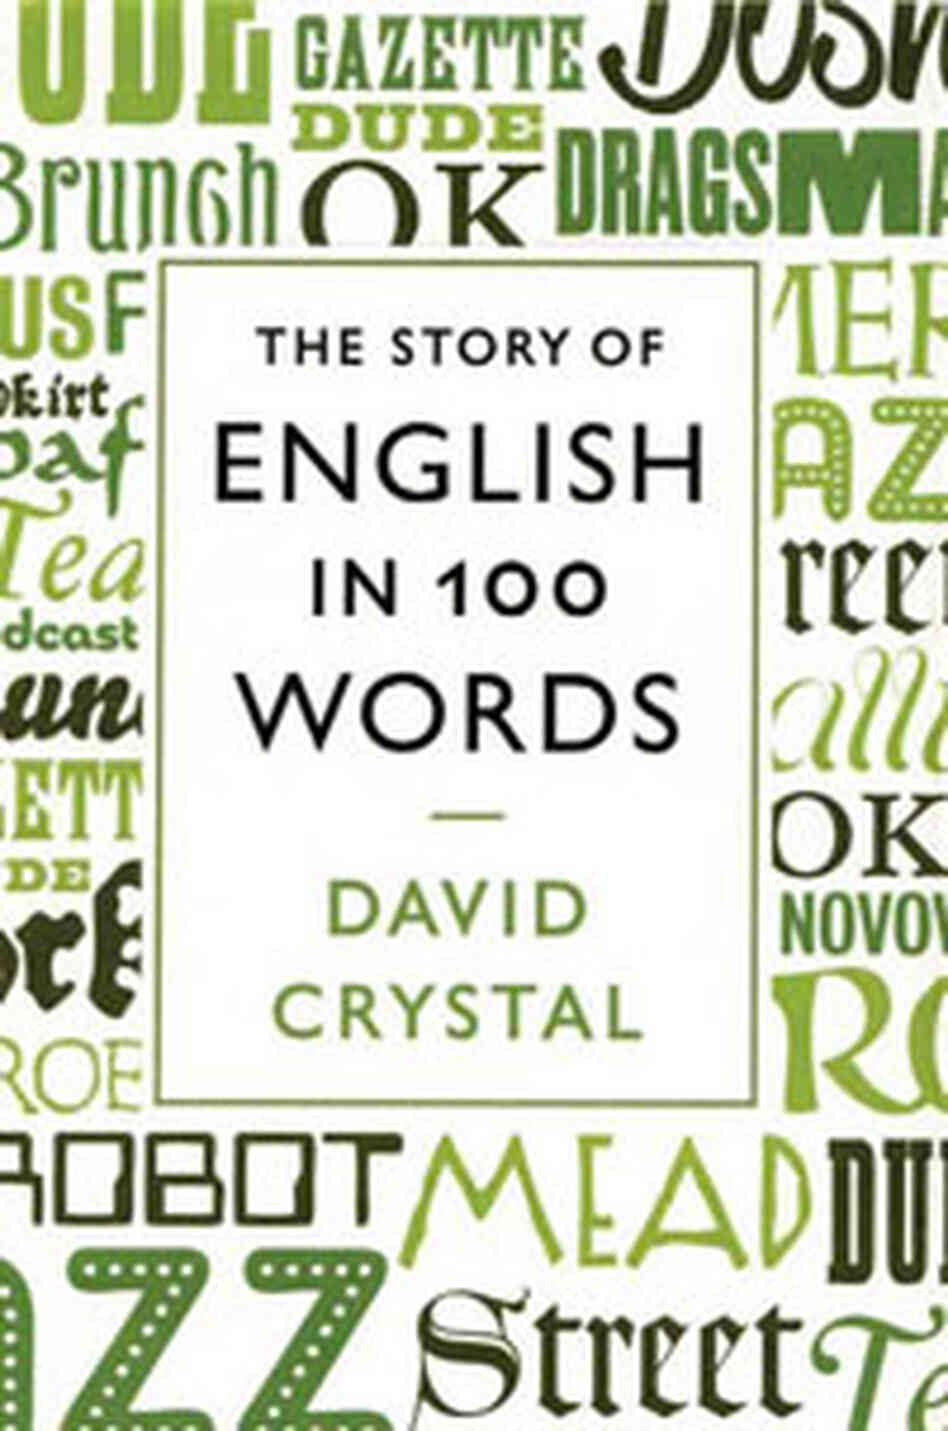 In our second hour, author David Crystal talks about his new book and the challenge to